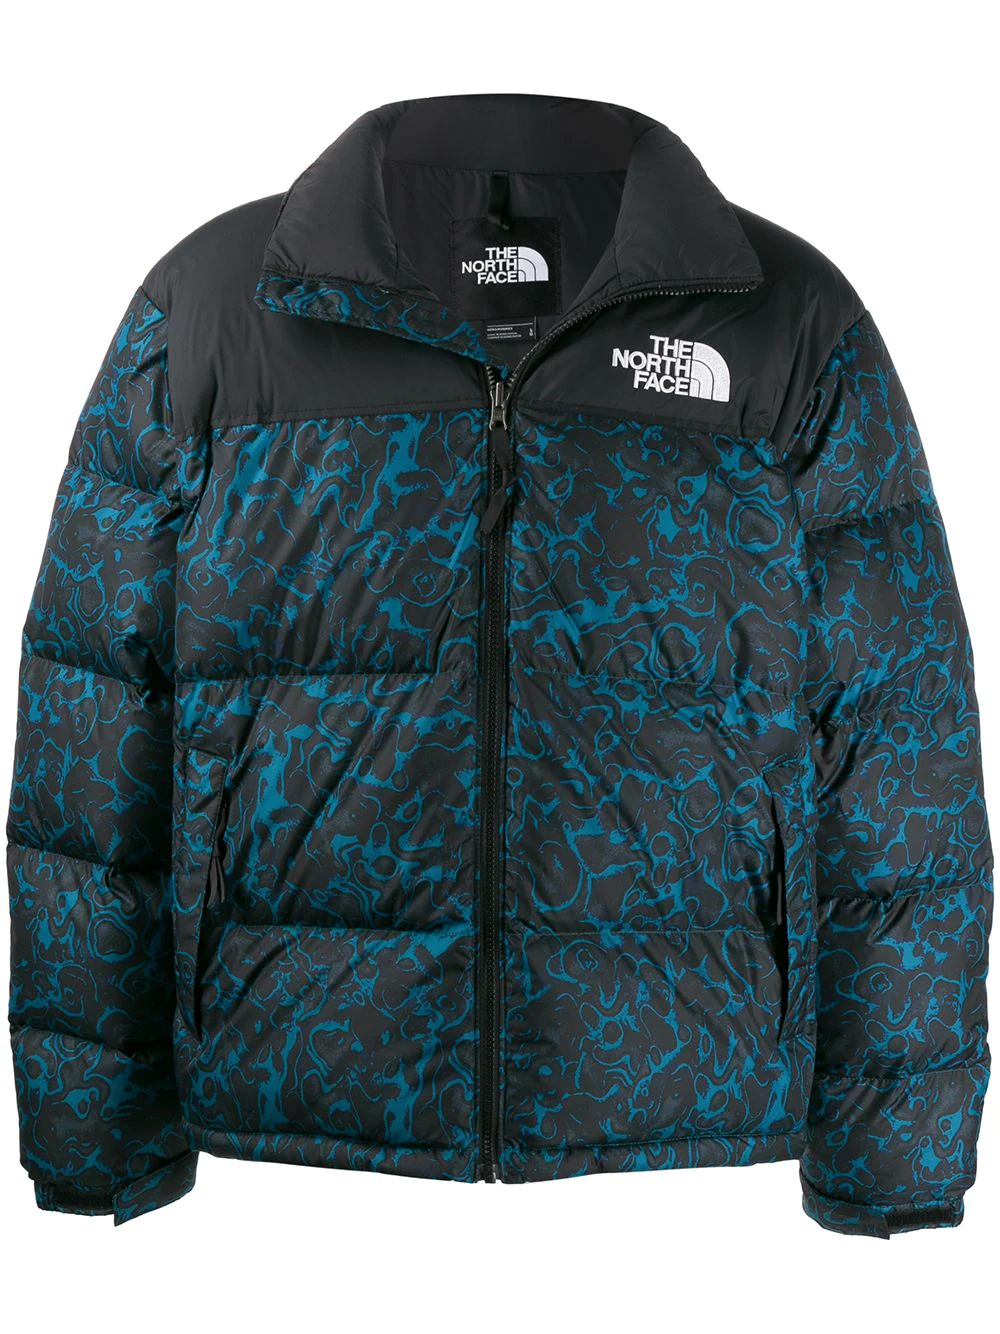 The North Face | The North Face пуховик с логотипом | Clouty